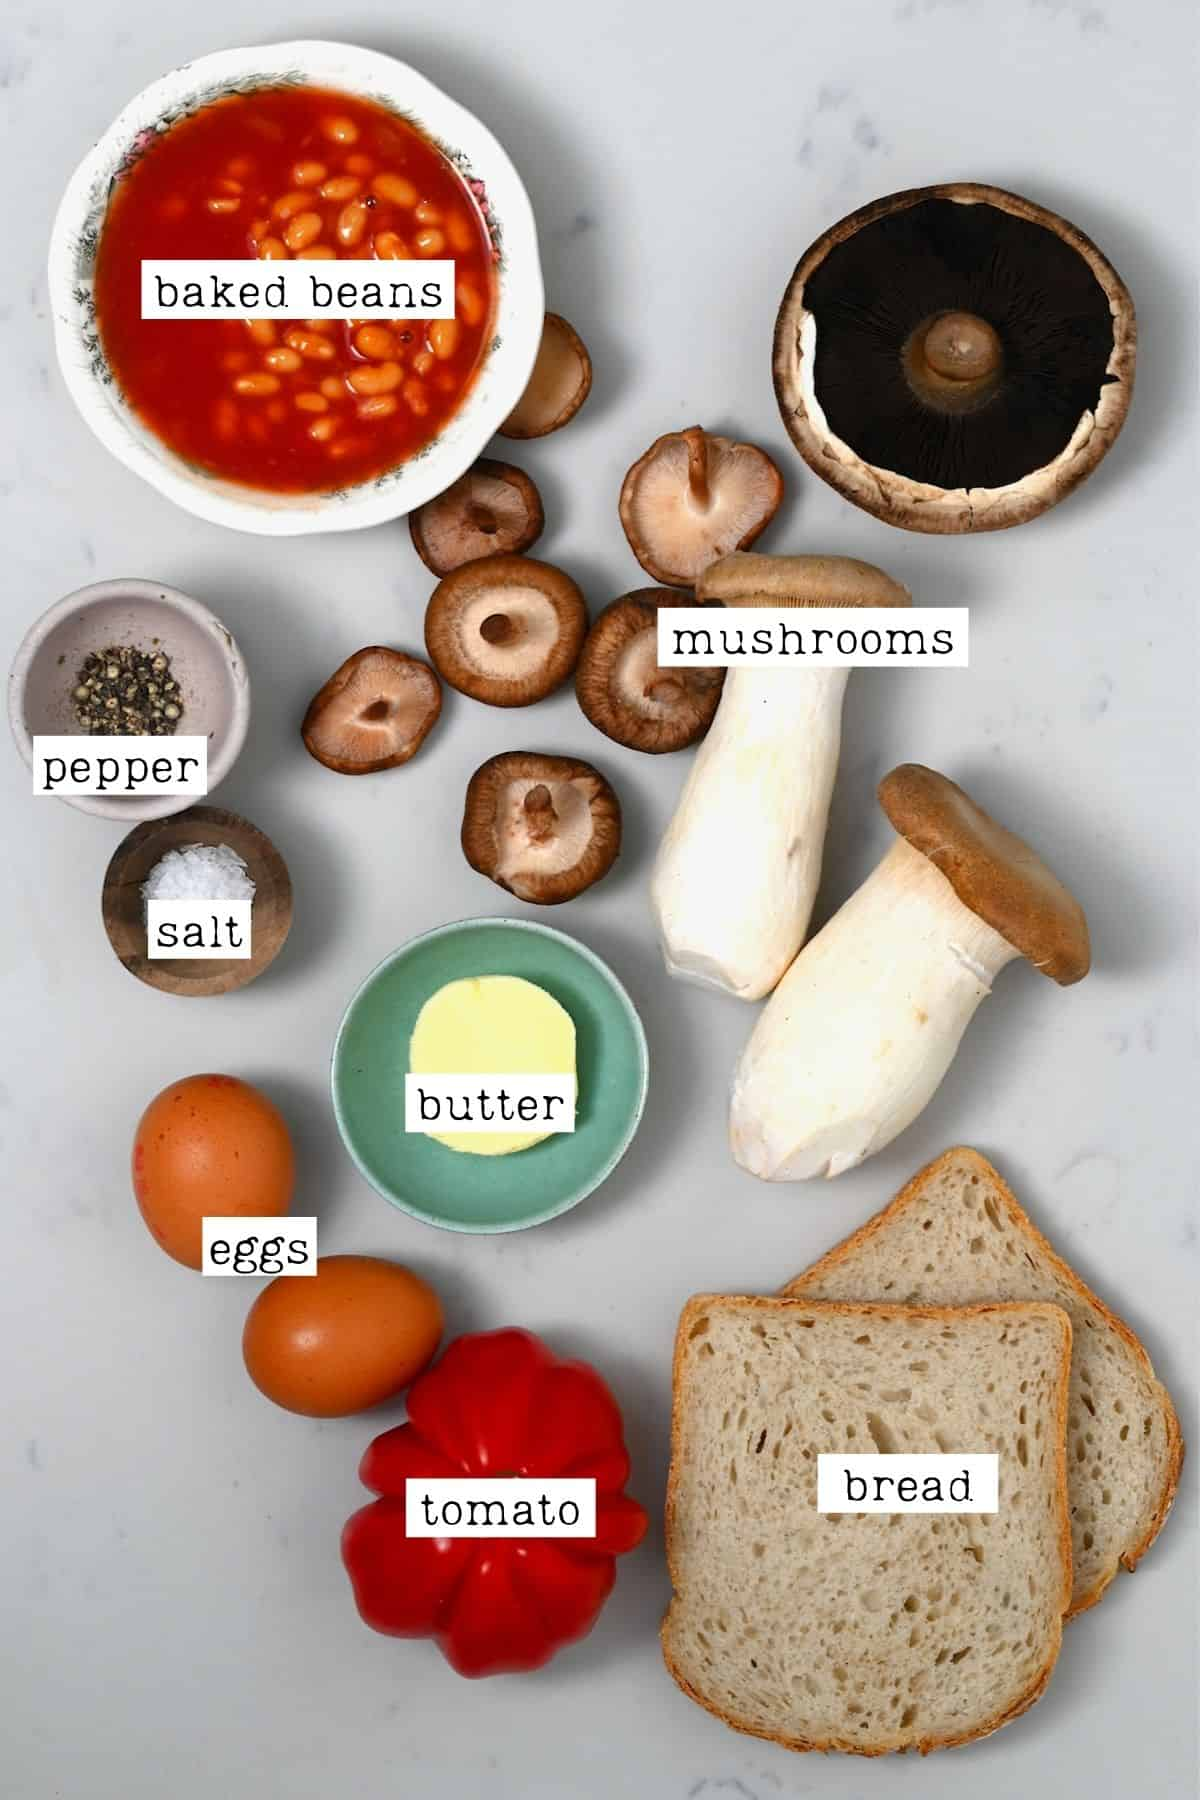 Ingredients for English breakfast